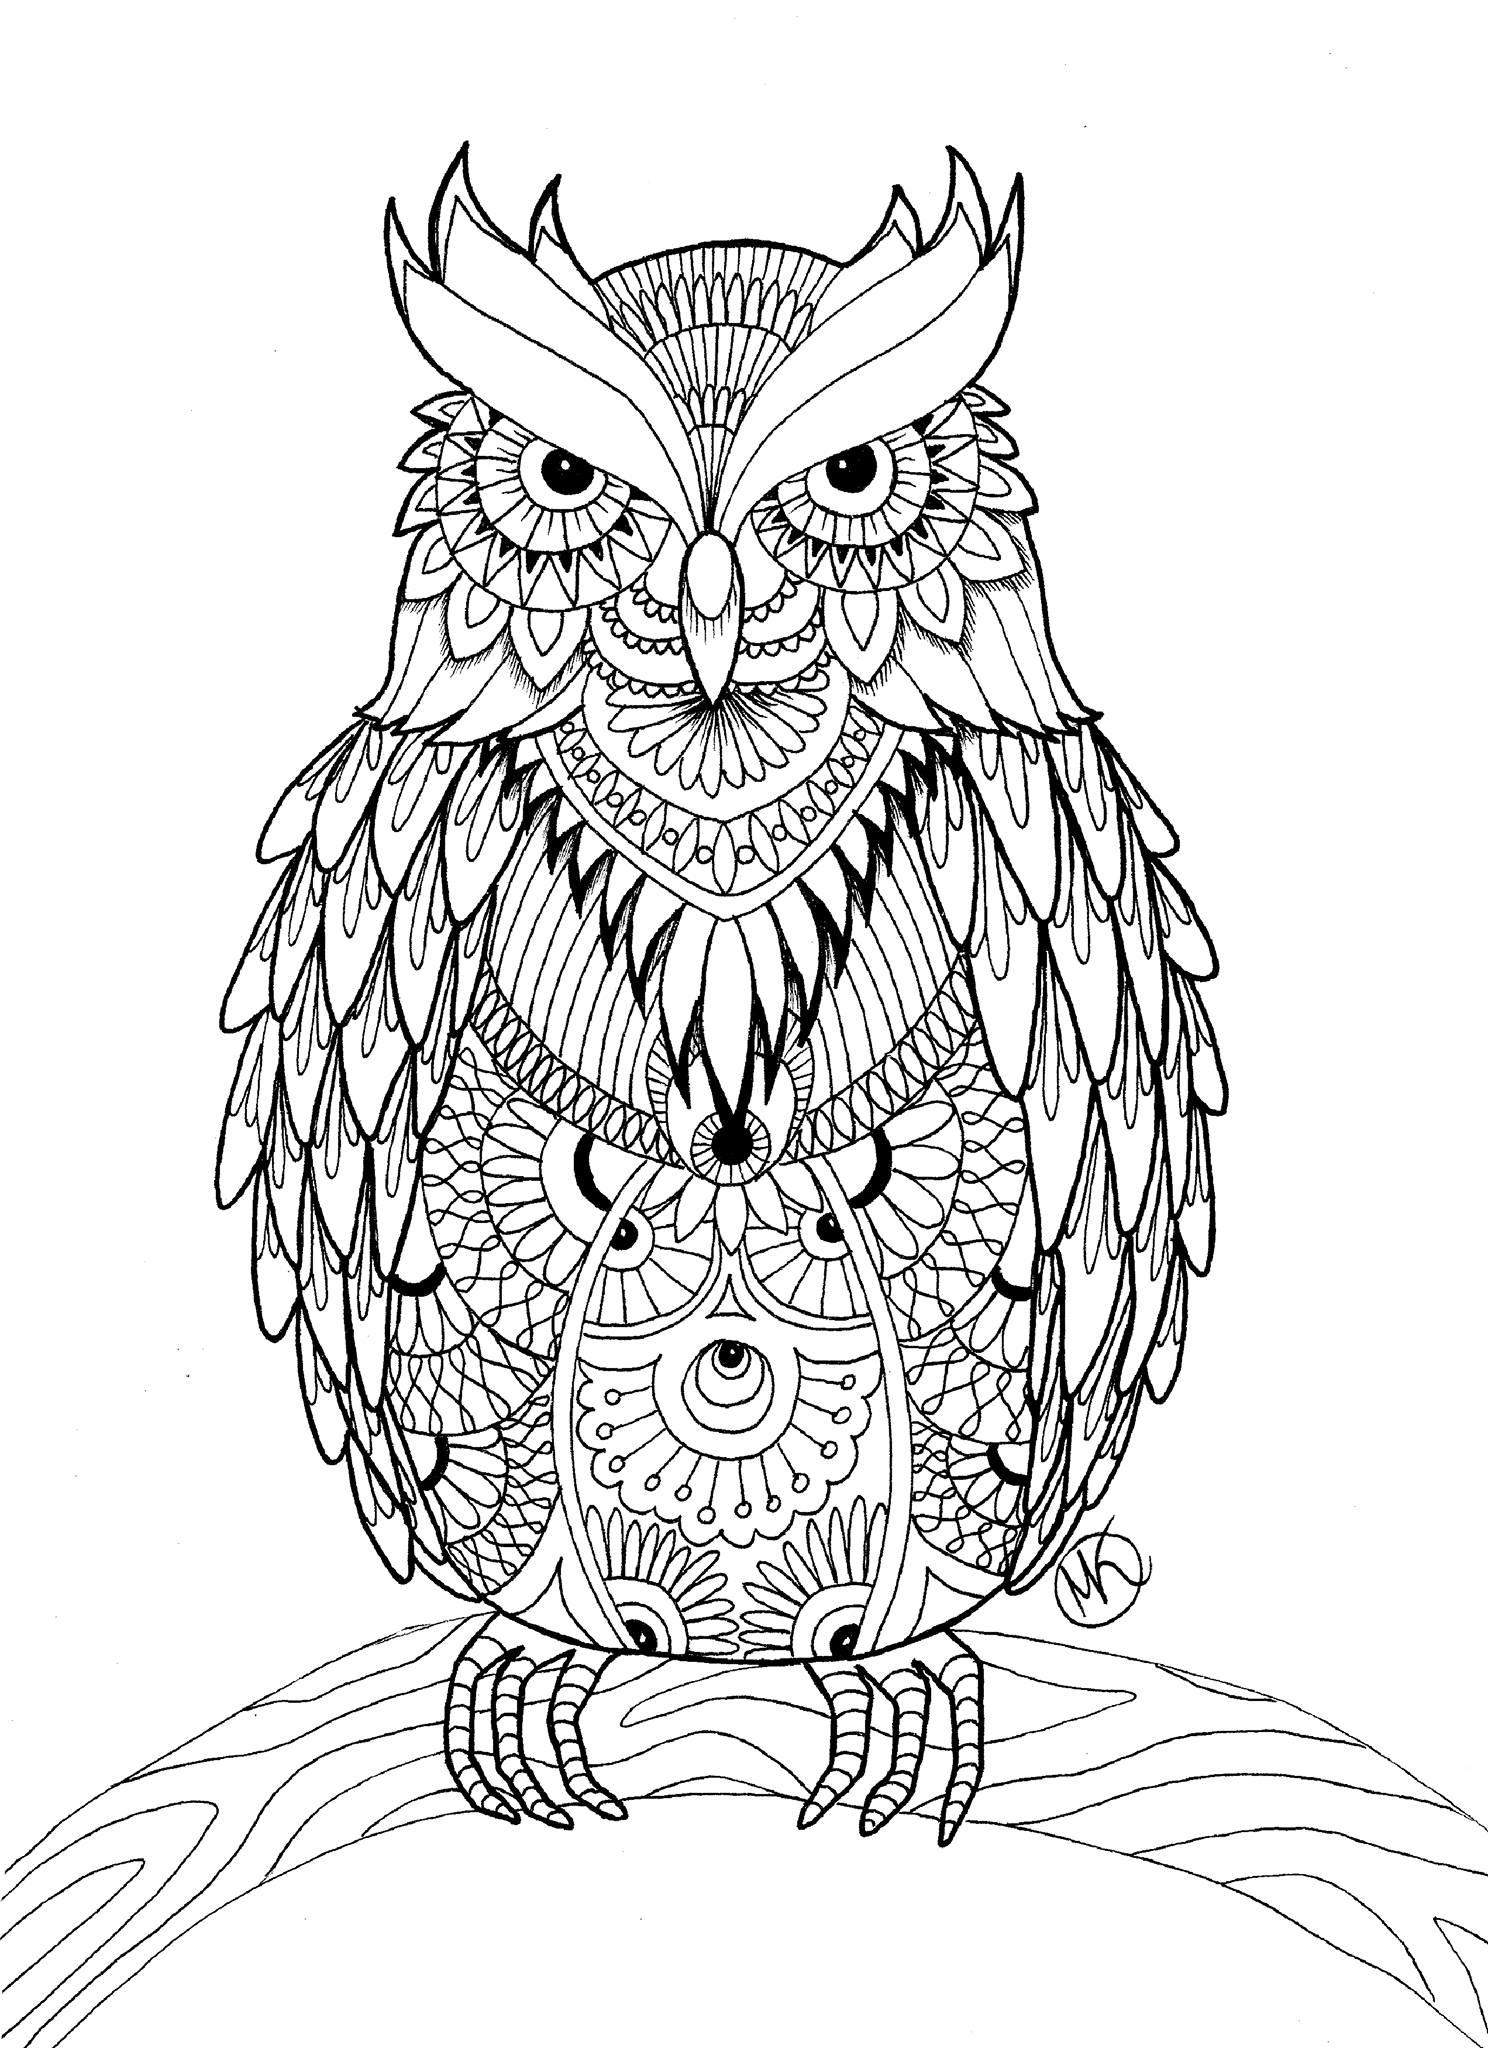 adult coloring pages free adult coloring pages to print to download and print for free free adult coloring pages